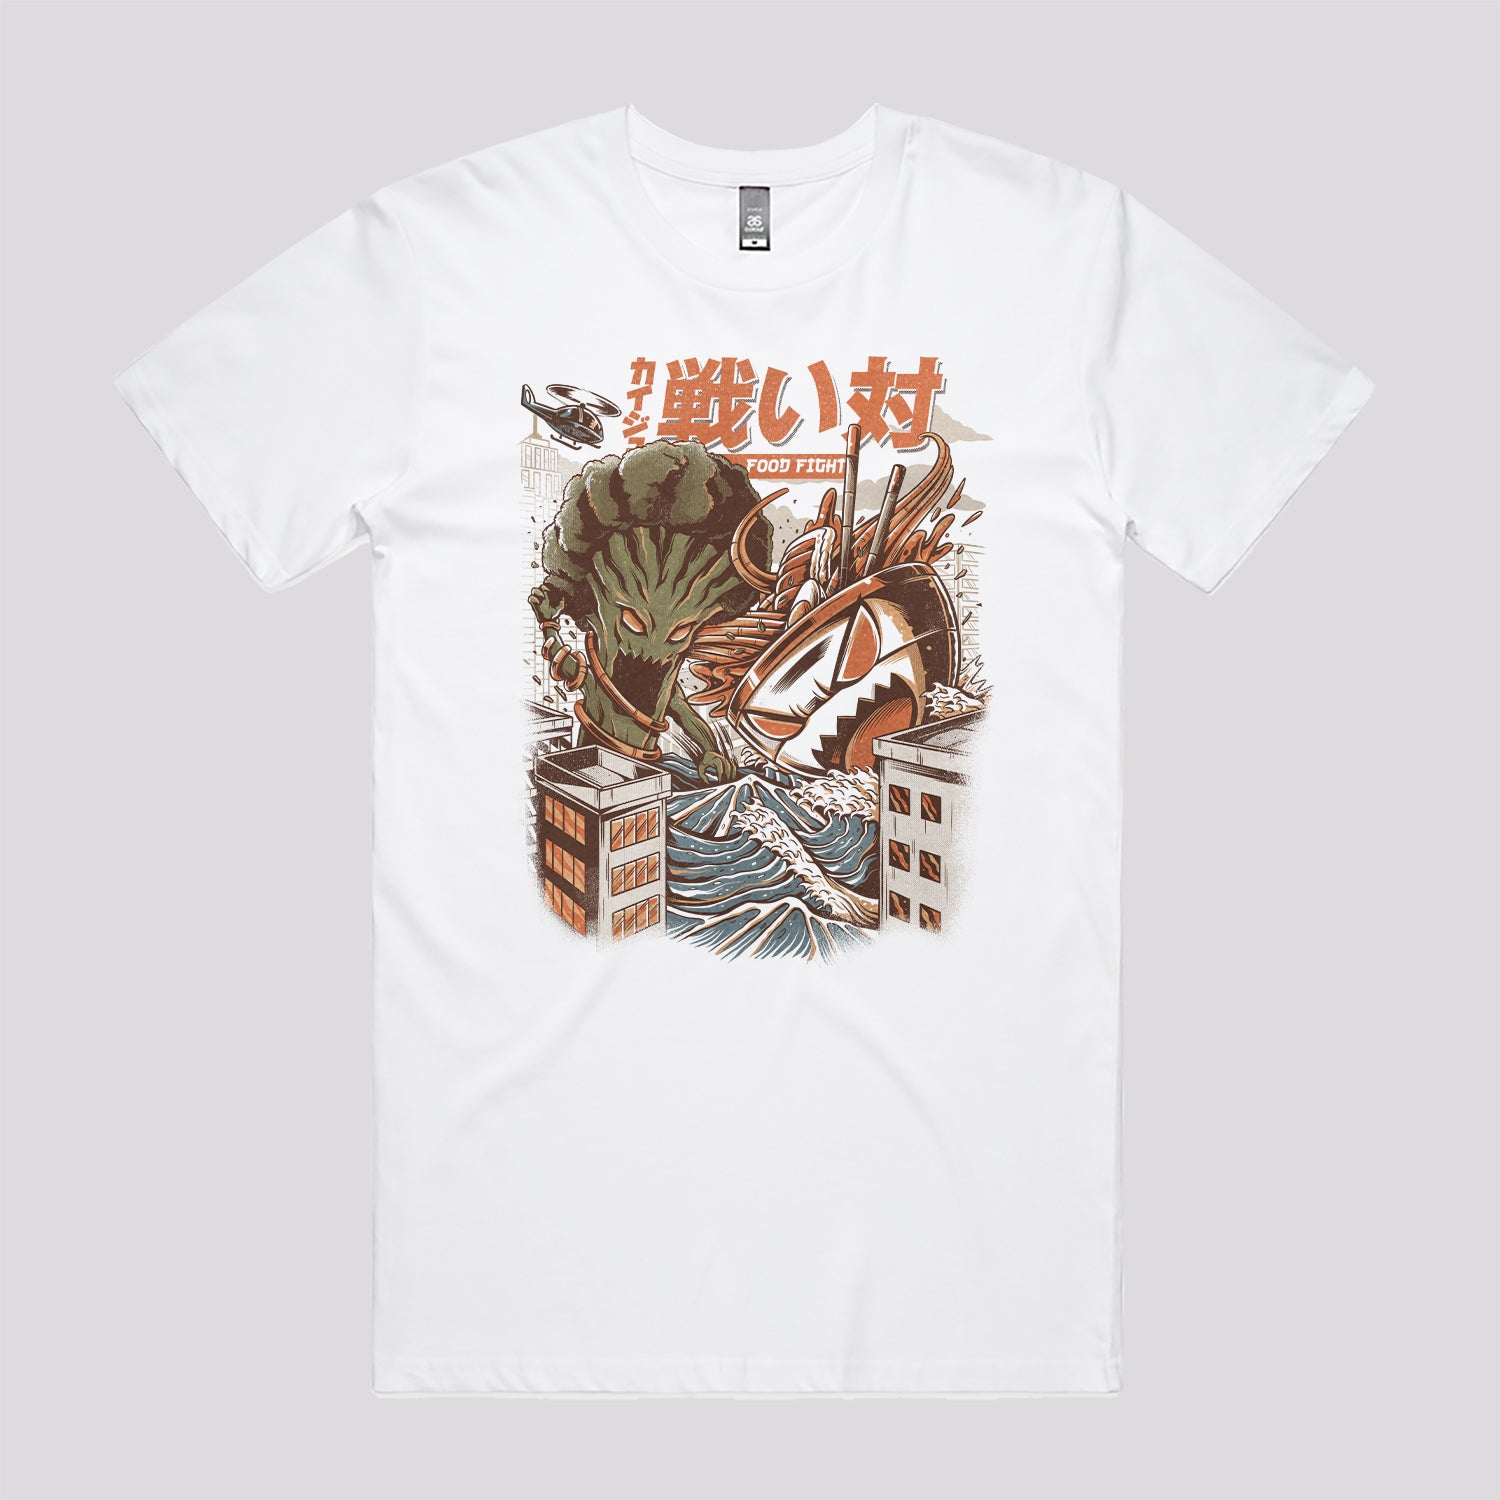 Brocco vs Ramen Kaijus T-Shirt